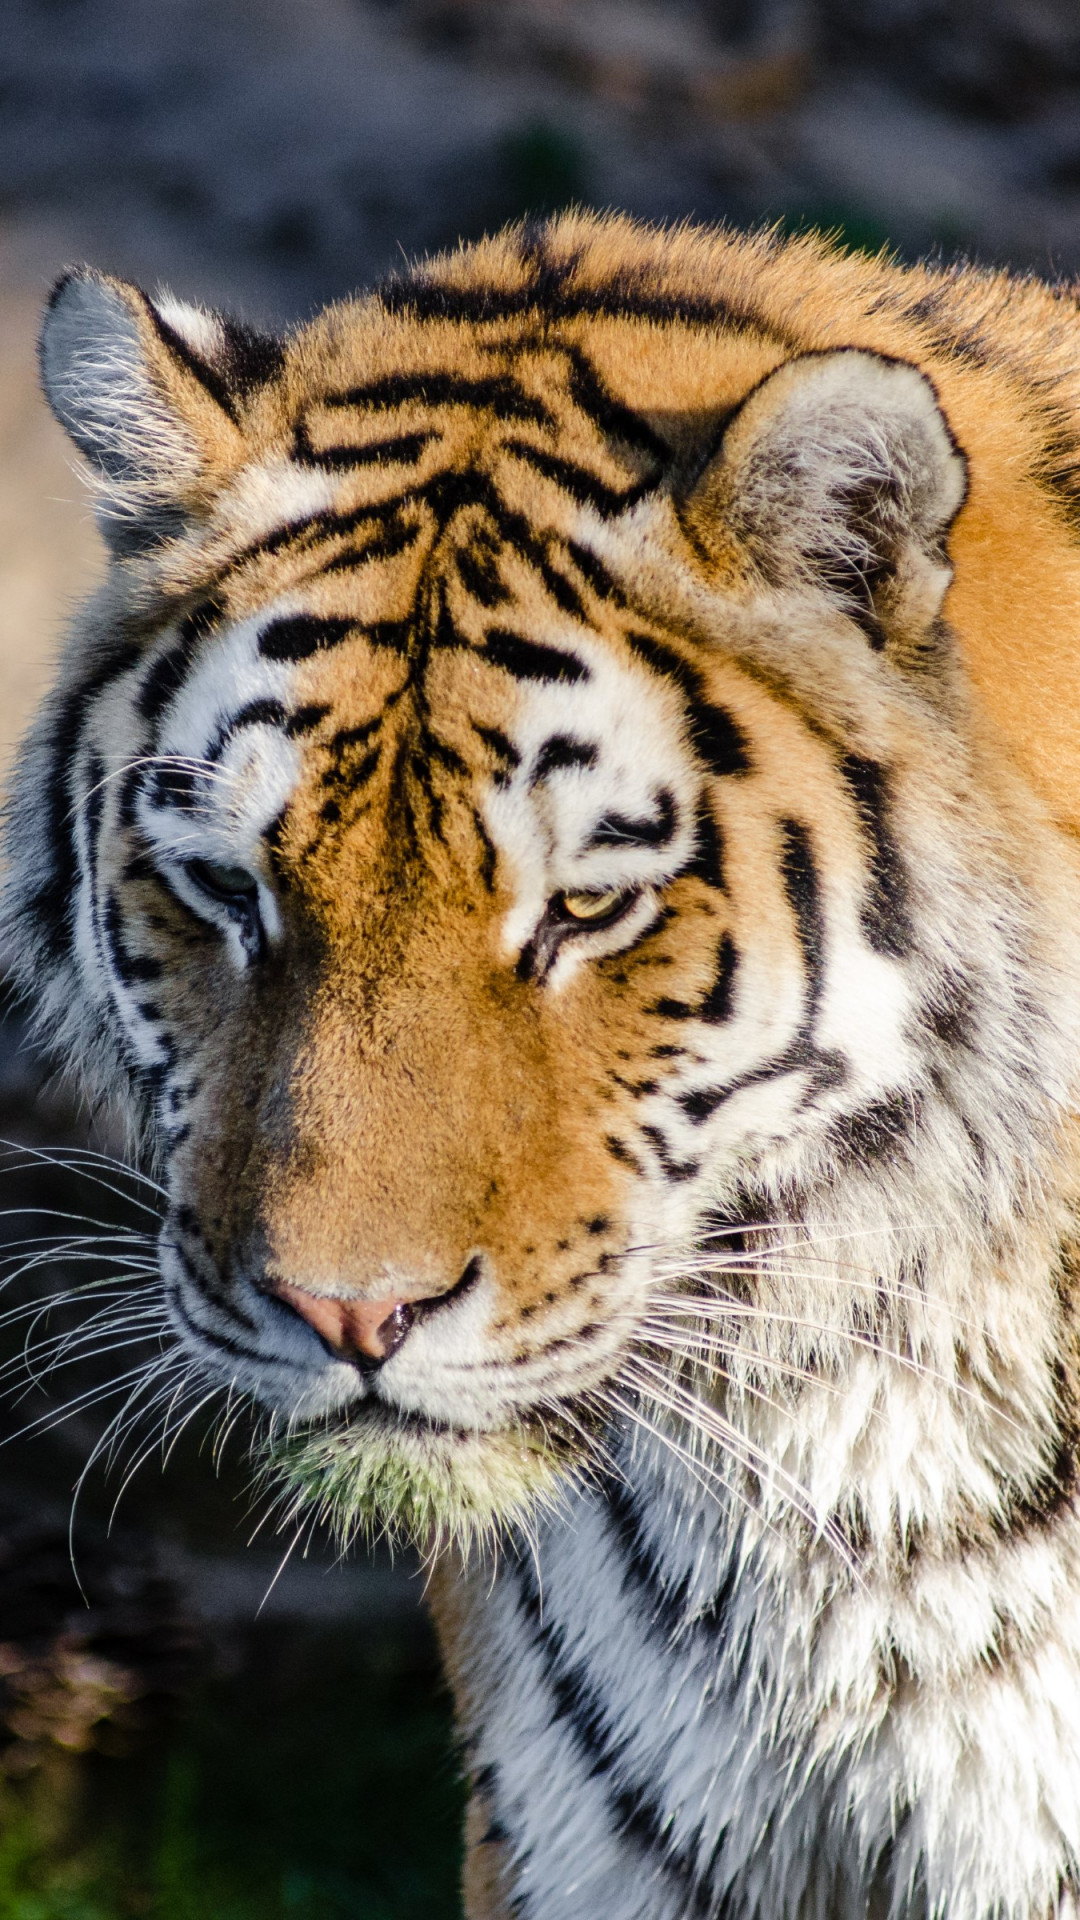 Siberian tiger at Zoo wallpaper 1080x1920